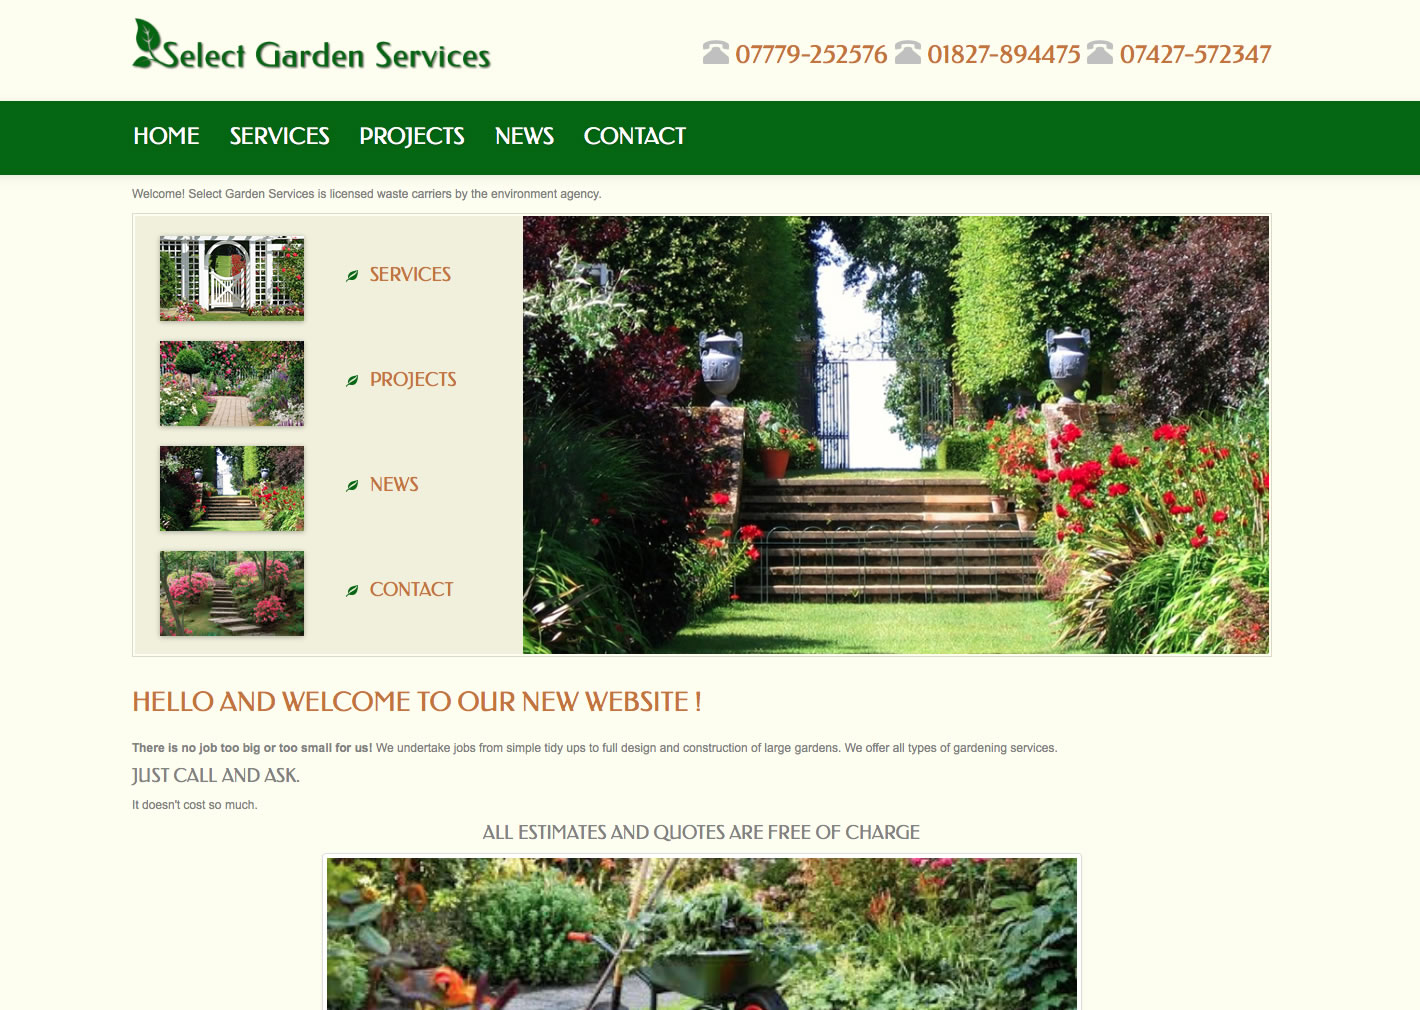 Designed Joomla! 3.x website - selectgardenservices.co.uk